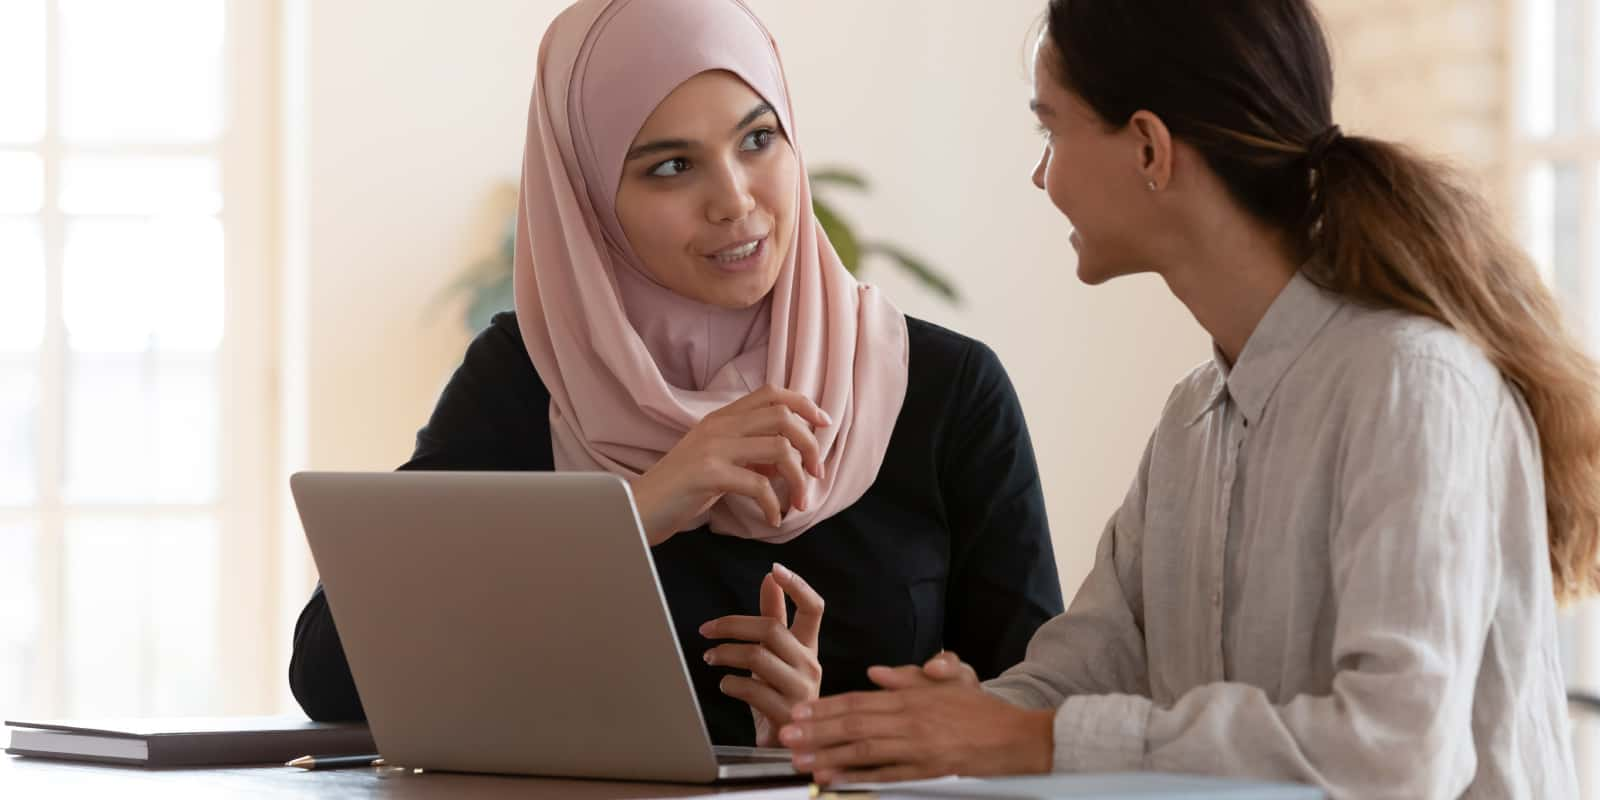 Two women talking with a laptop open in front of them